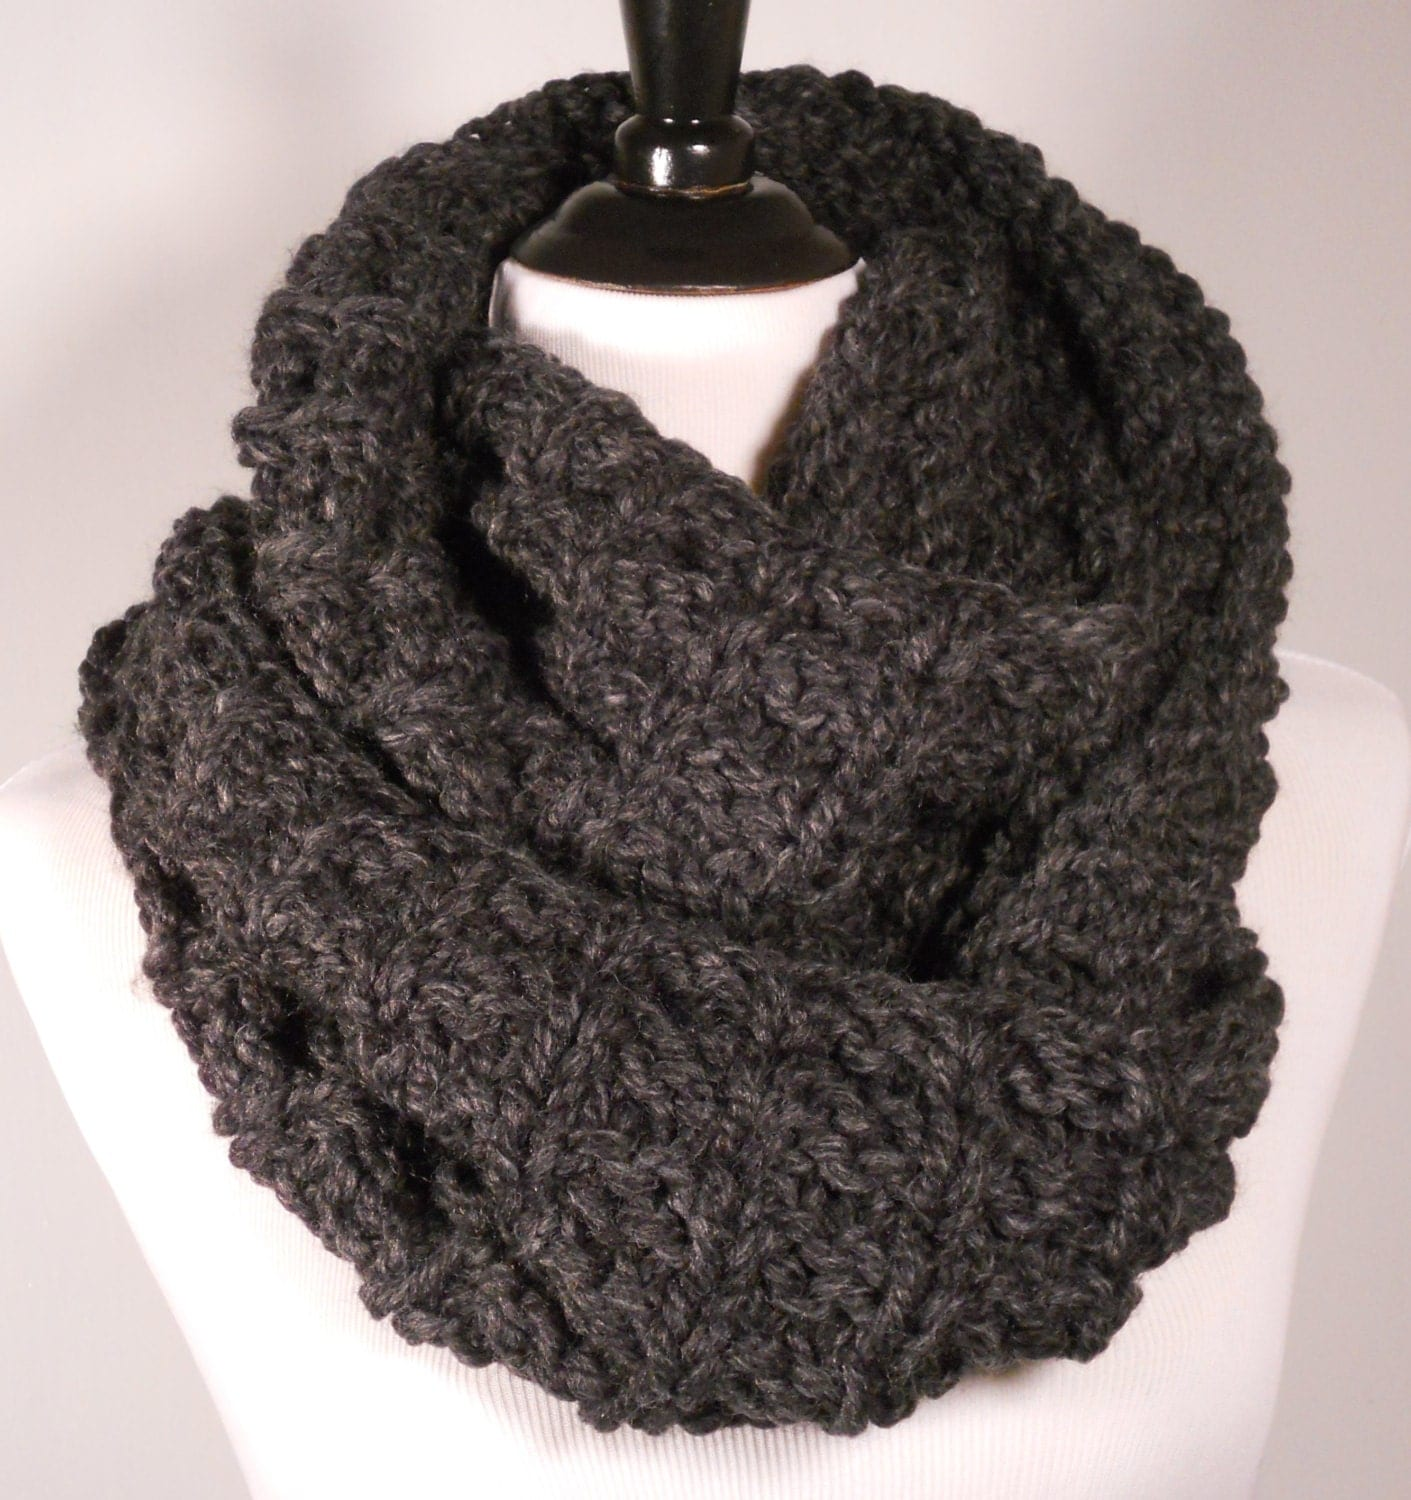 Black Knitted Infinity Scarf Knit Scarf Charcoal Black